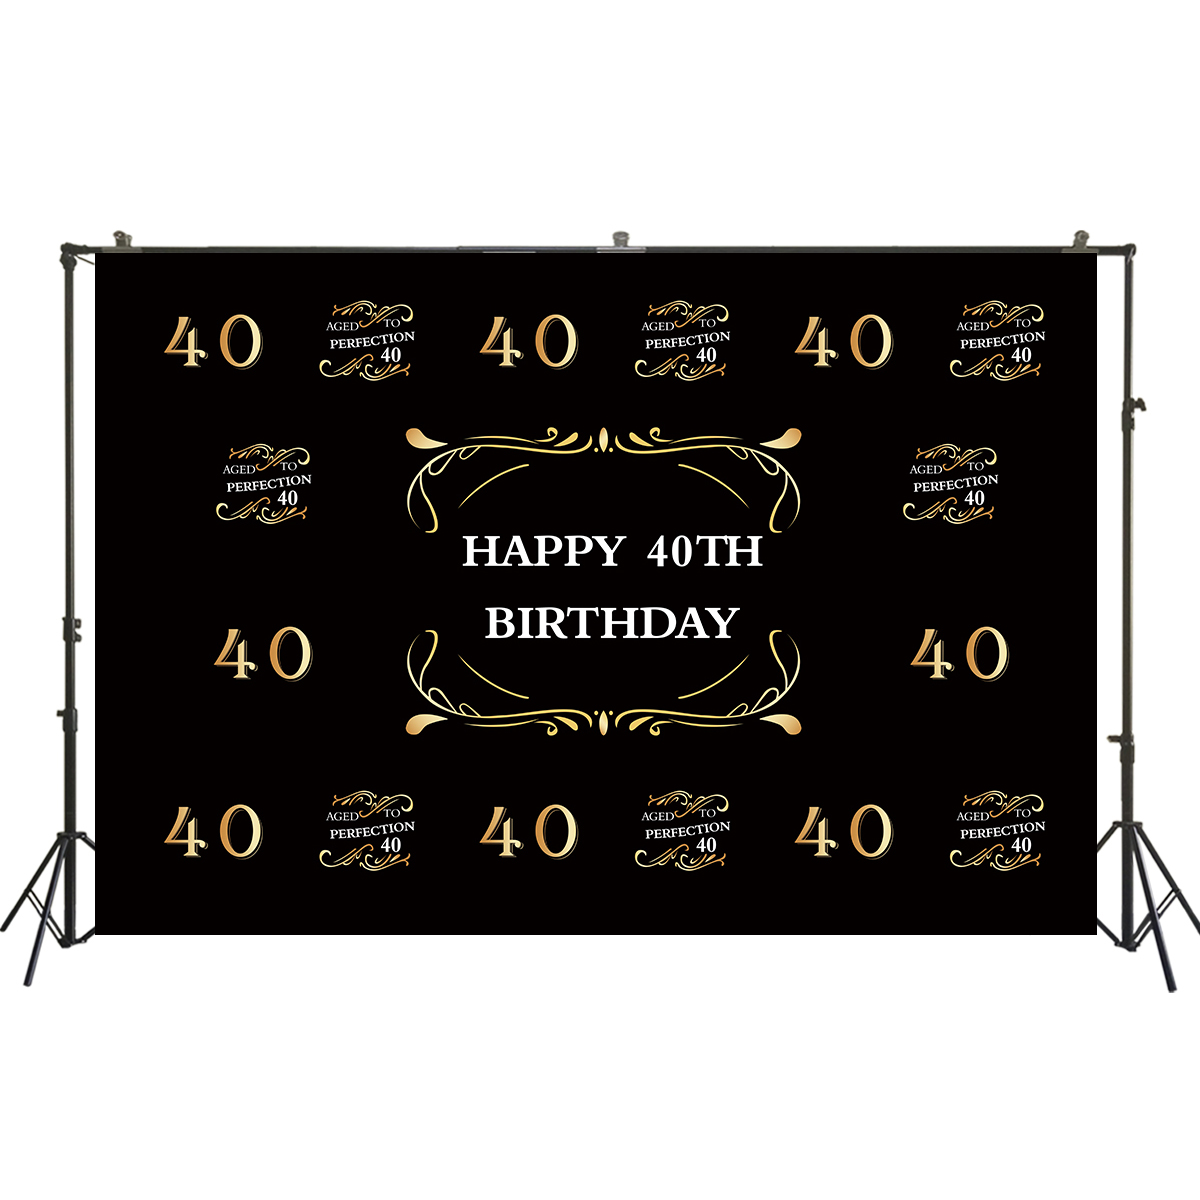 HUAYI Photography <font><b>Backdrop</b></font> <font><b>Birthday</b></font> Party Decor Photo Background <font><b>40th</b></font> <font><b>Birthday</b></font> Adults Banner Studio Photo Booth <font><b>Backdrop</b></font> W-2246 image